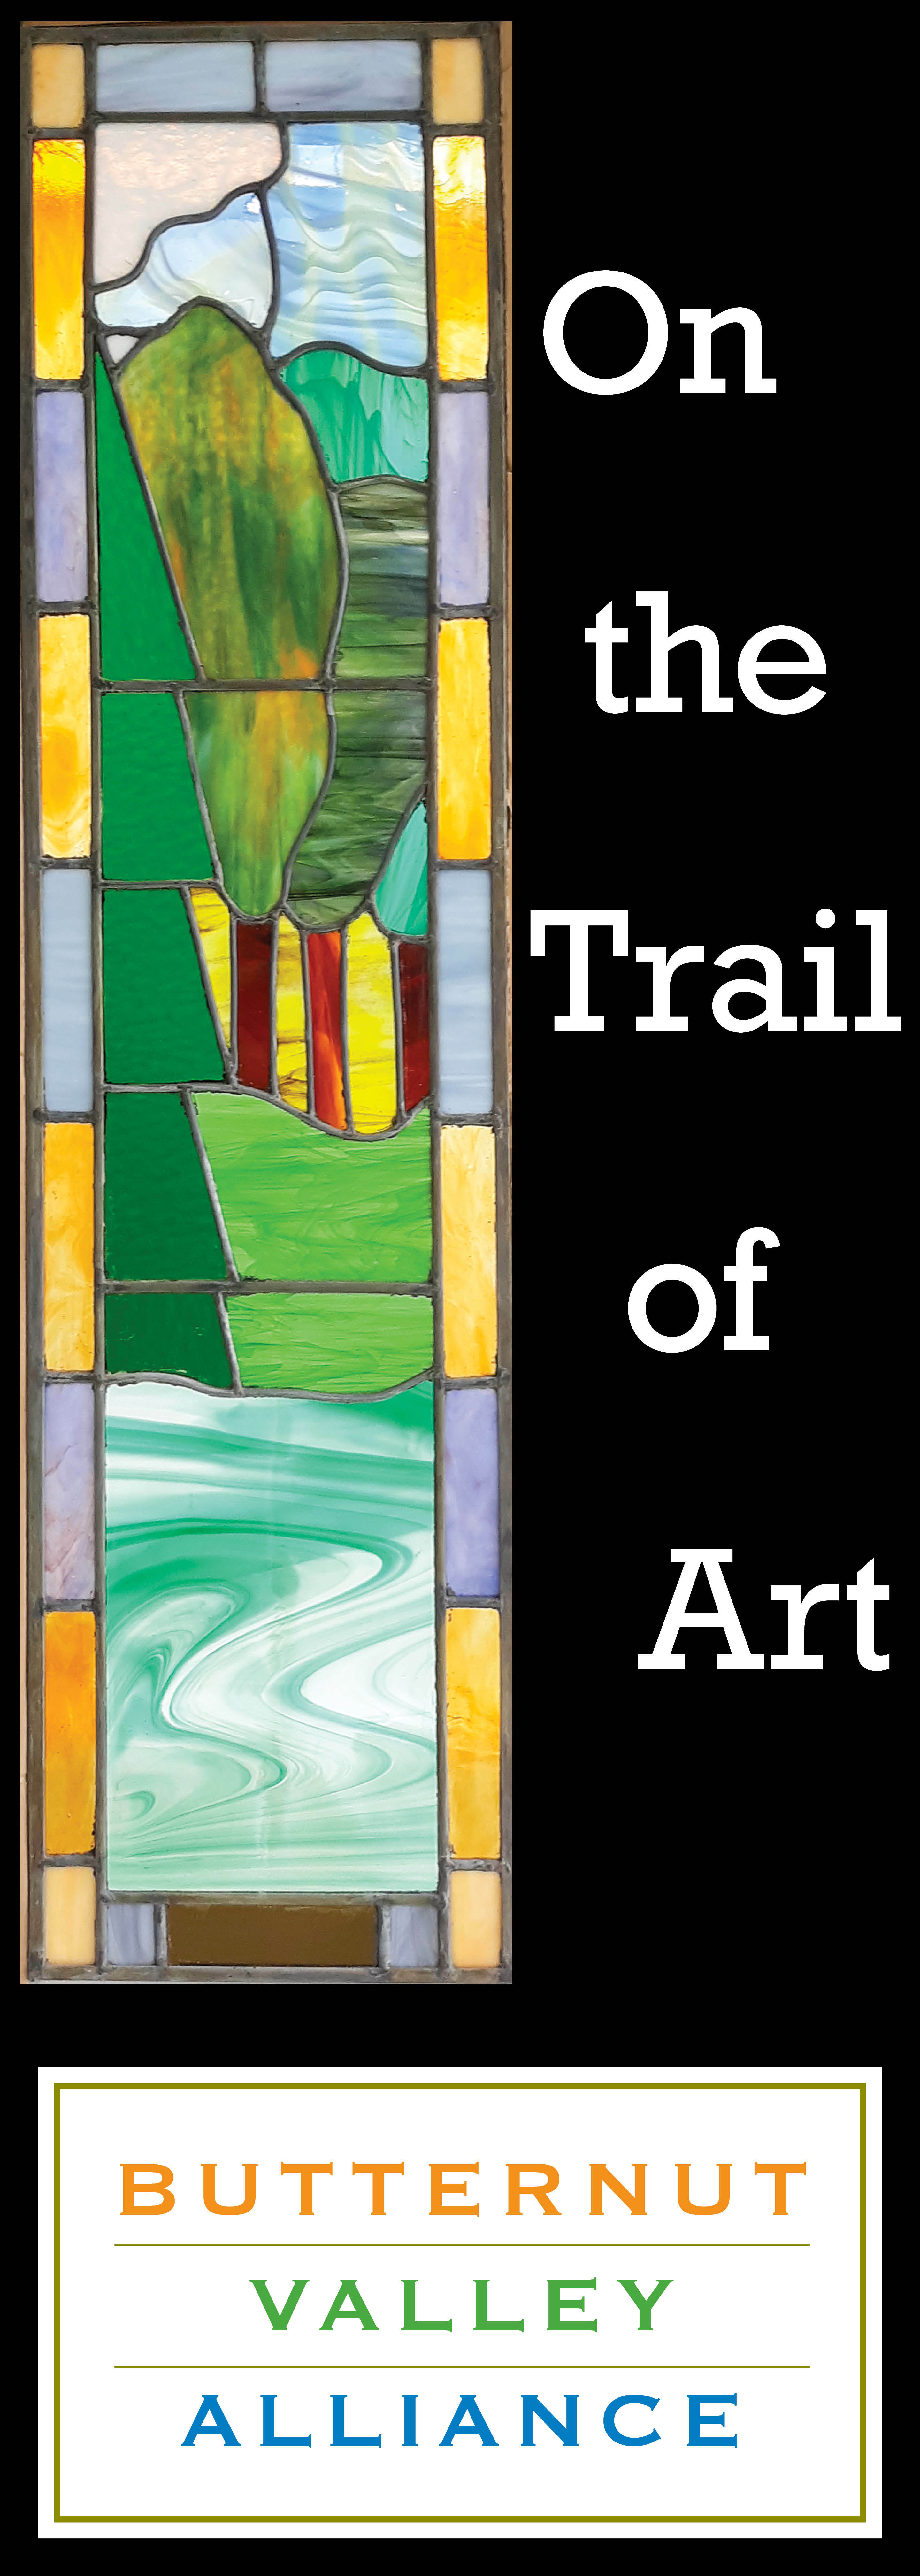 On the Trail of Art